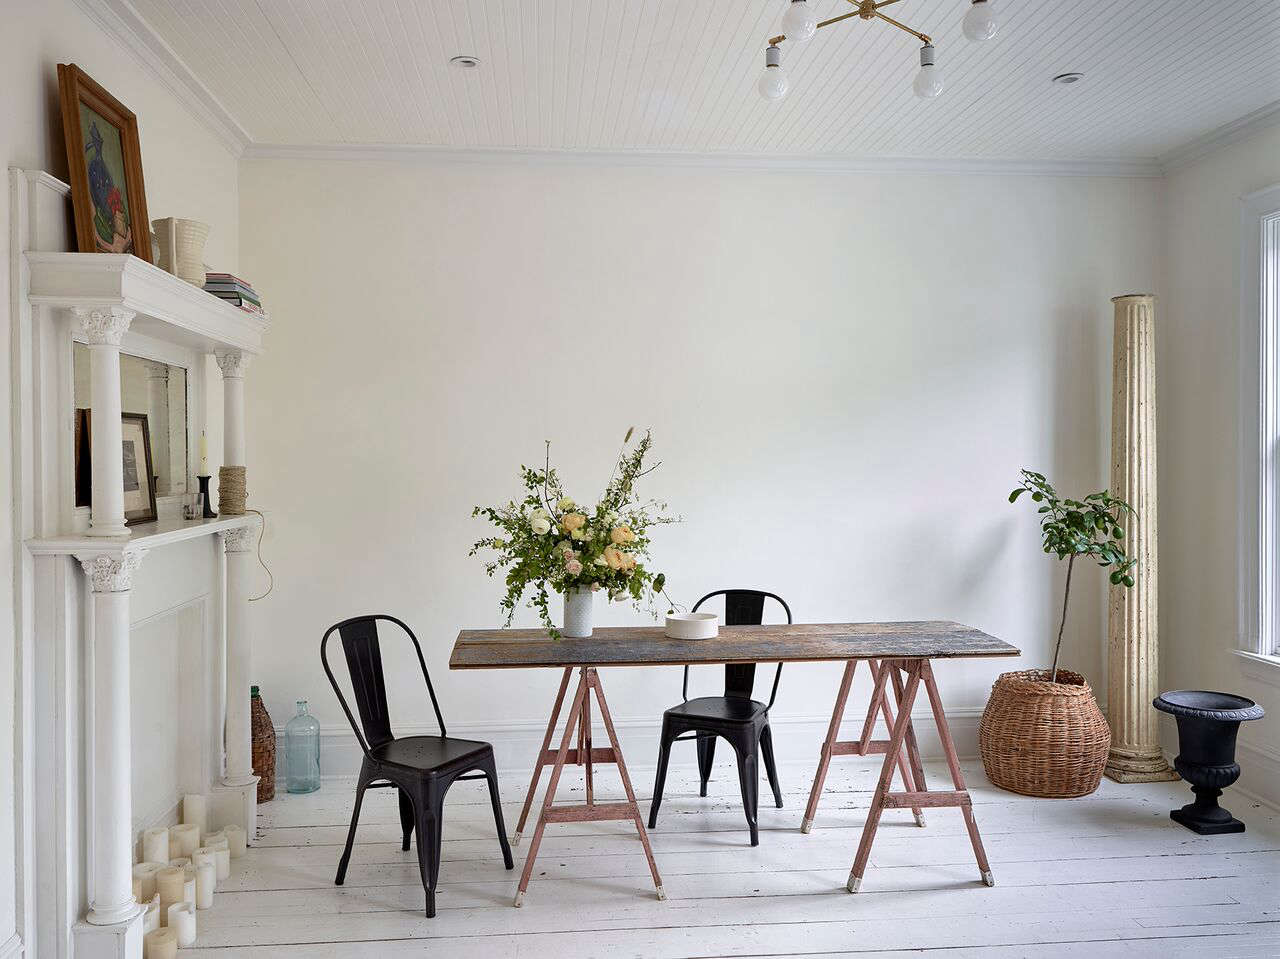 Small-Space DIY: 7 Sawhorse Dining Tables for Impromptu Gatherings - Remodelista